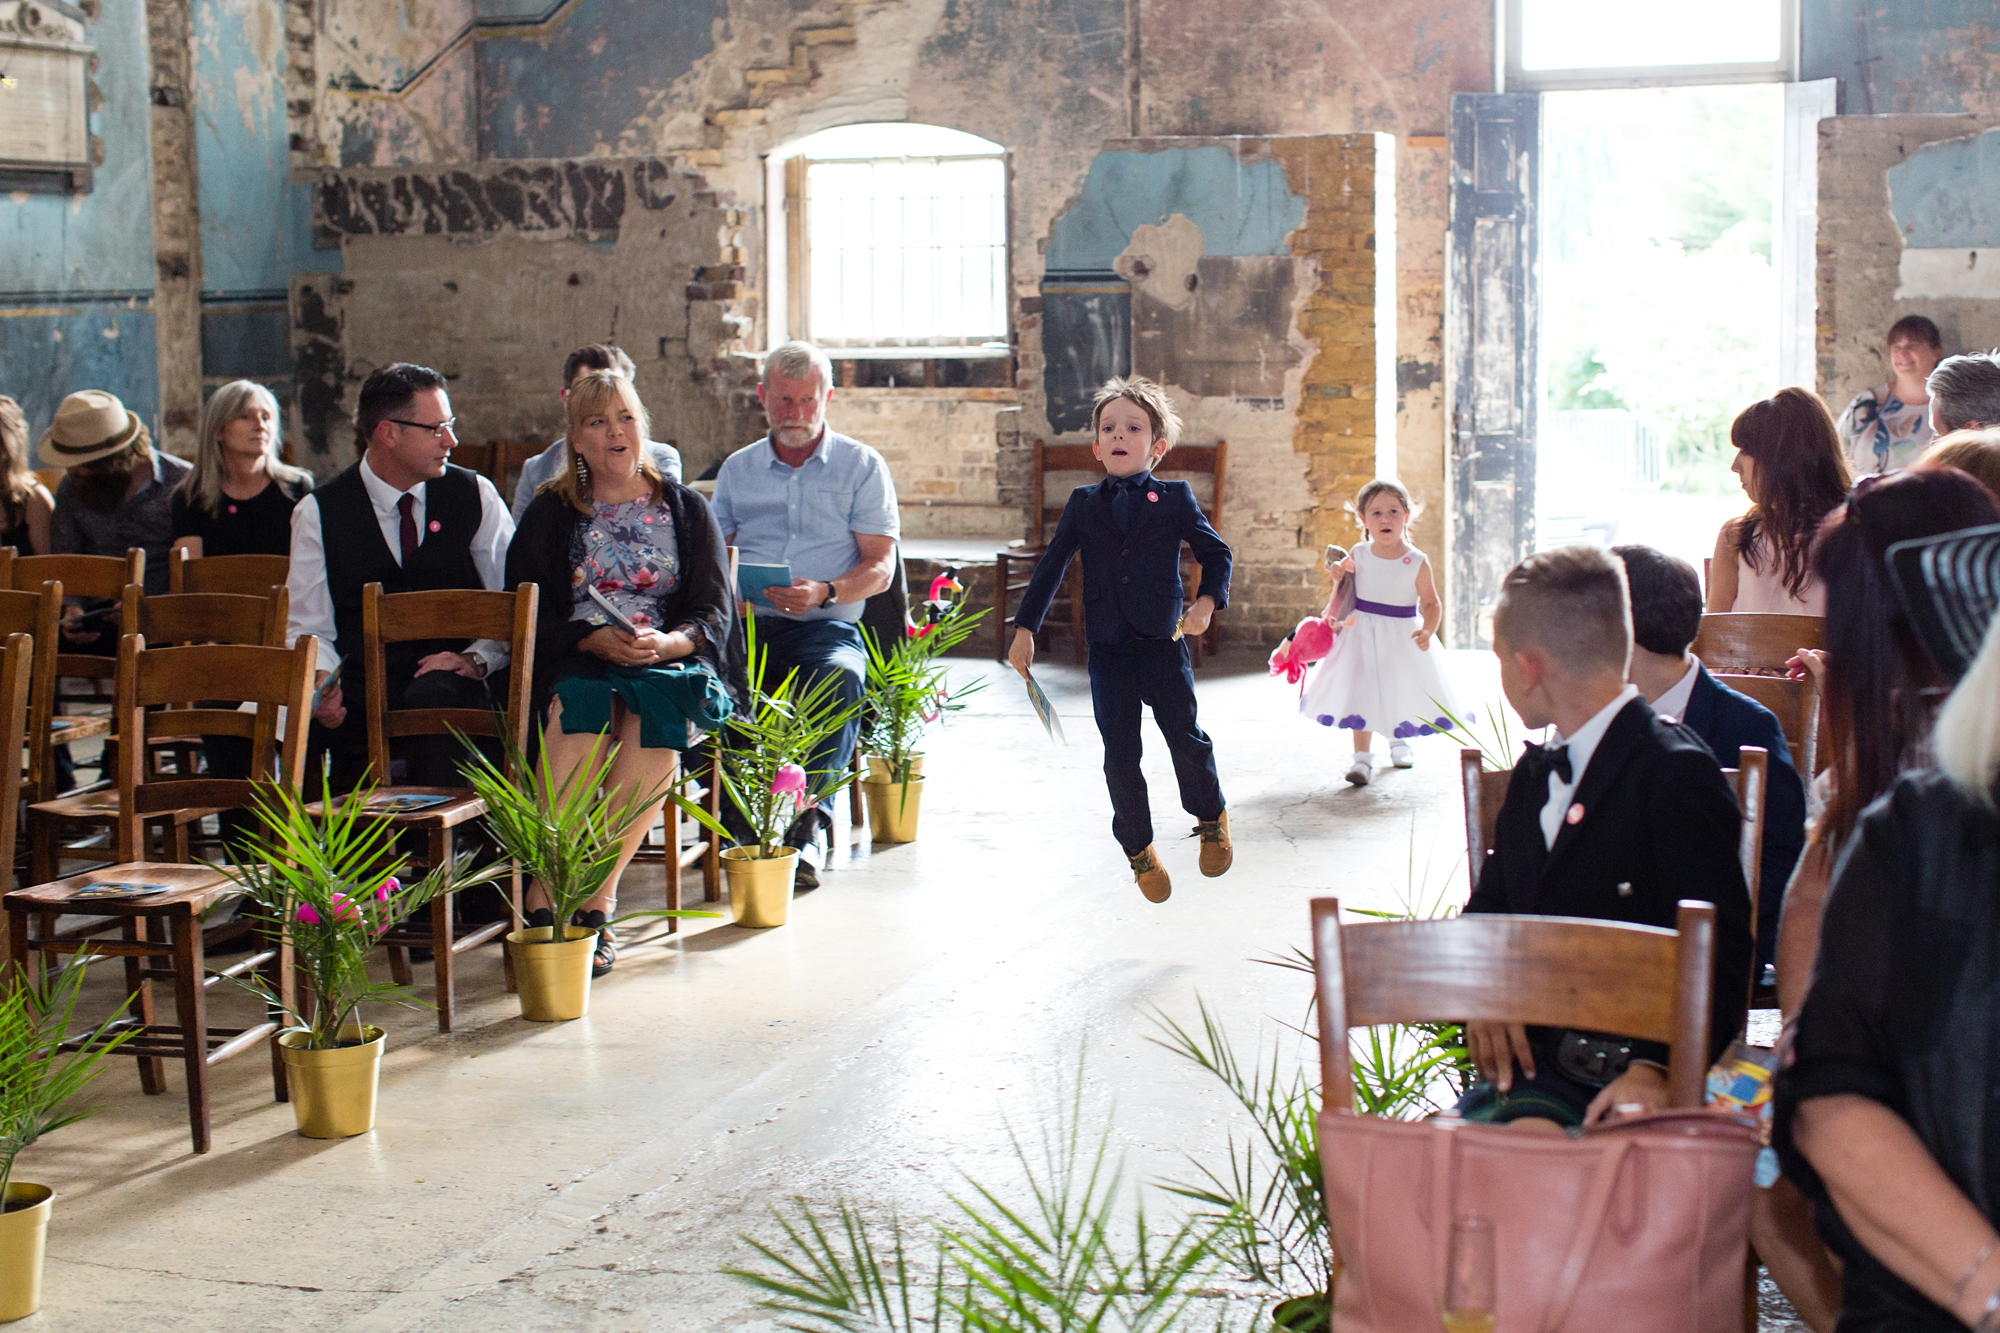 Ring bearer skips up the aisle at wedding at Asylum chapel in London